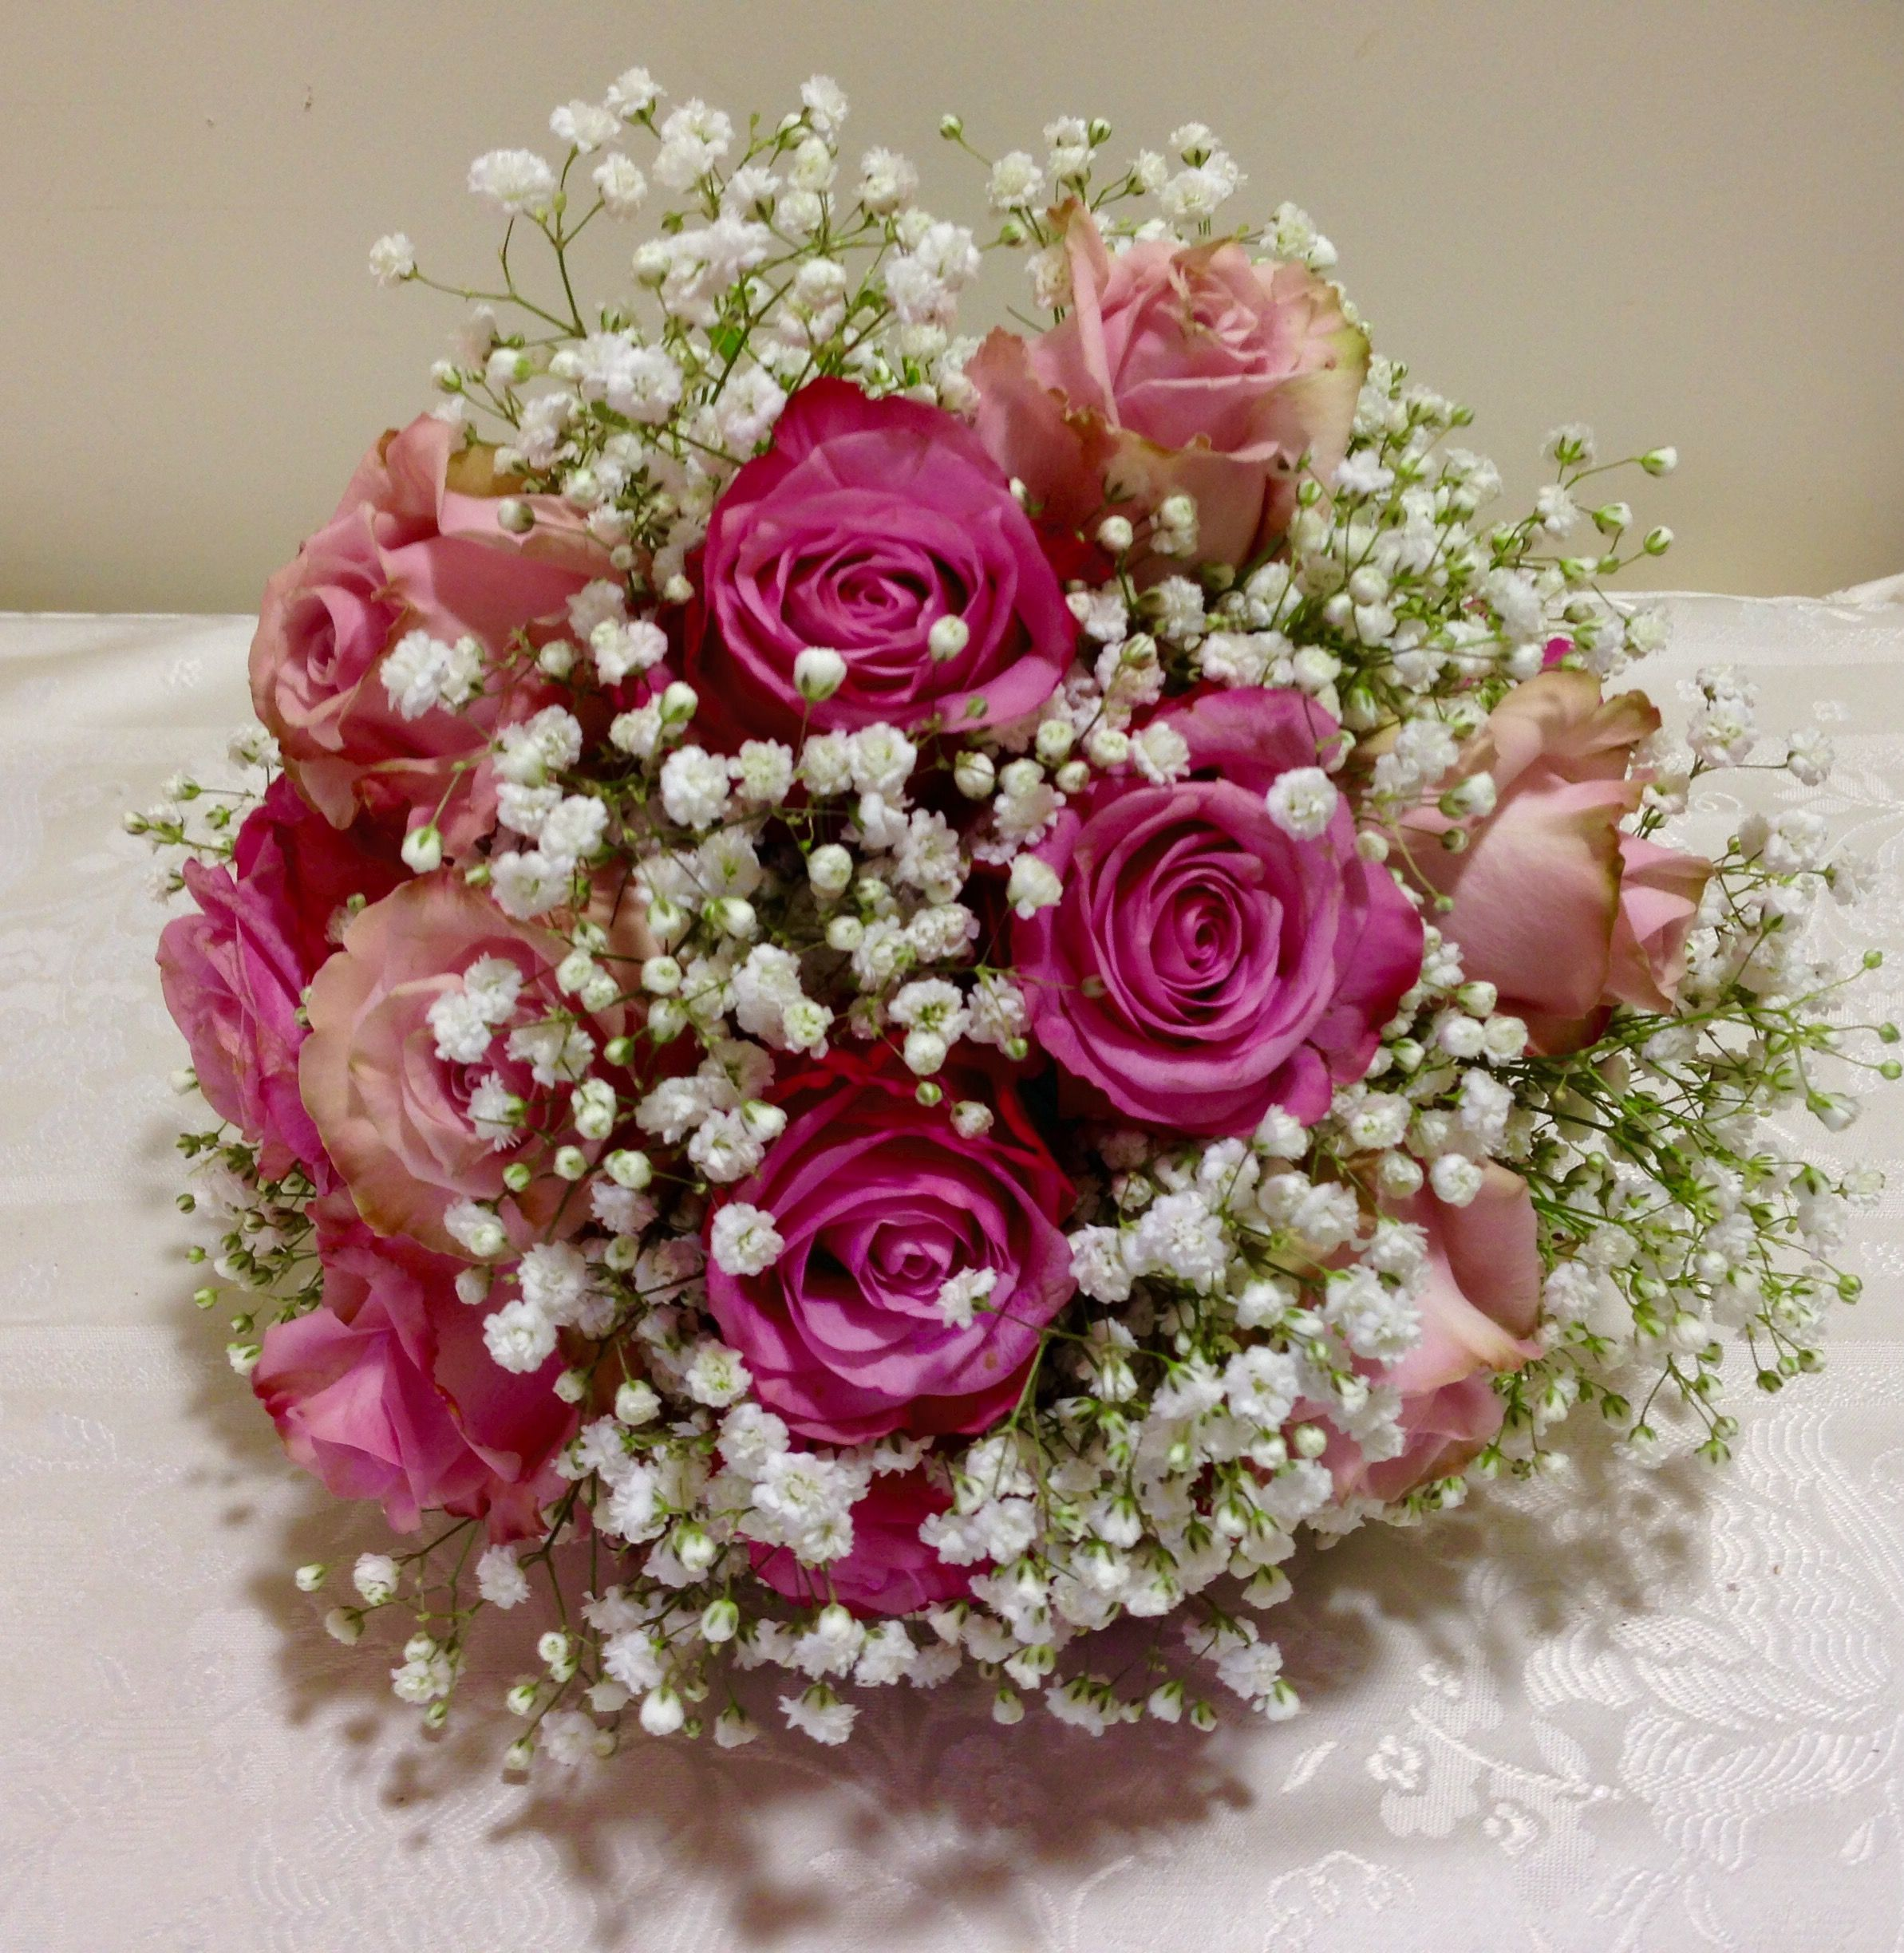 Shades Of Dusky Pink Roses In A Nest Of Gypsy For This Brides